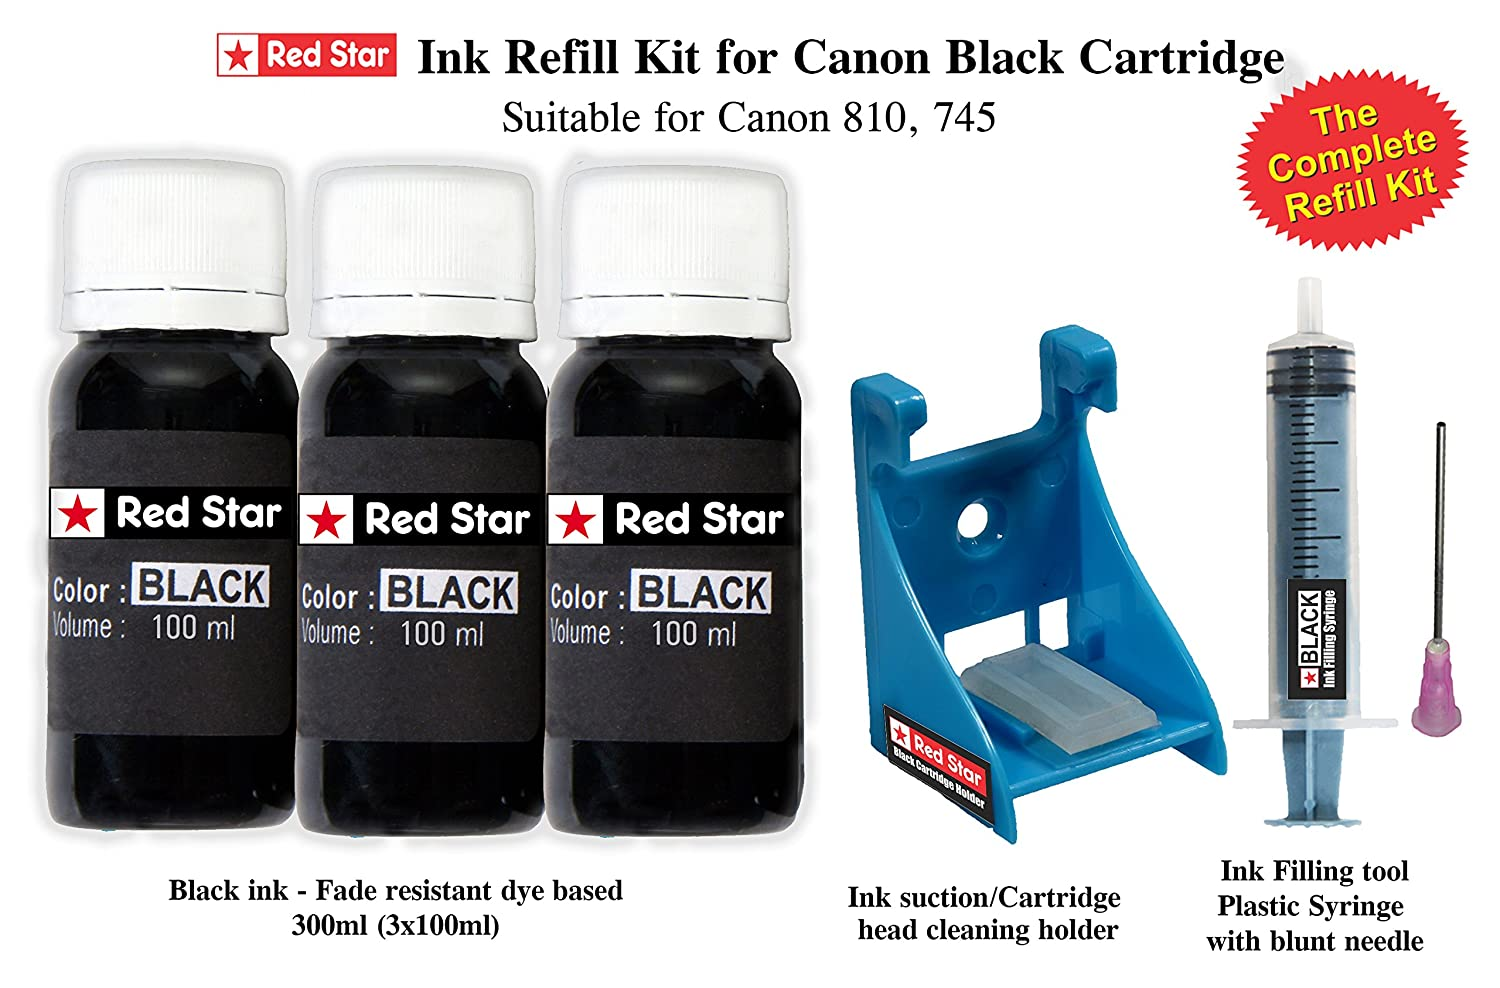 Red Star Refill Kit For Canon Pg 745 810 47 Black Ink Cartridge Cadtrige 300ml Tools Filling And Head Cleaning Computers